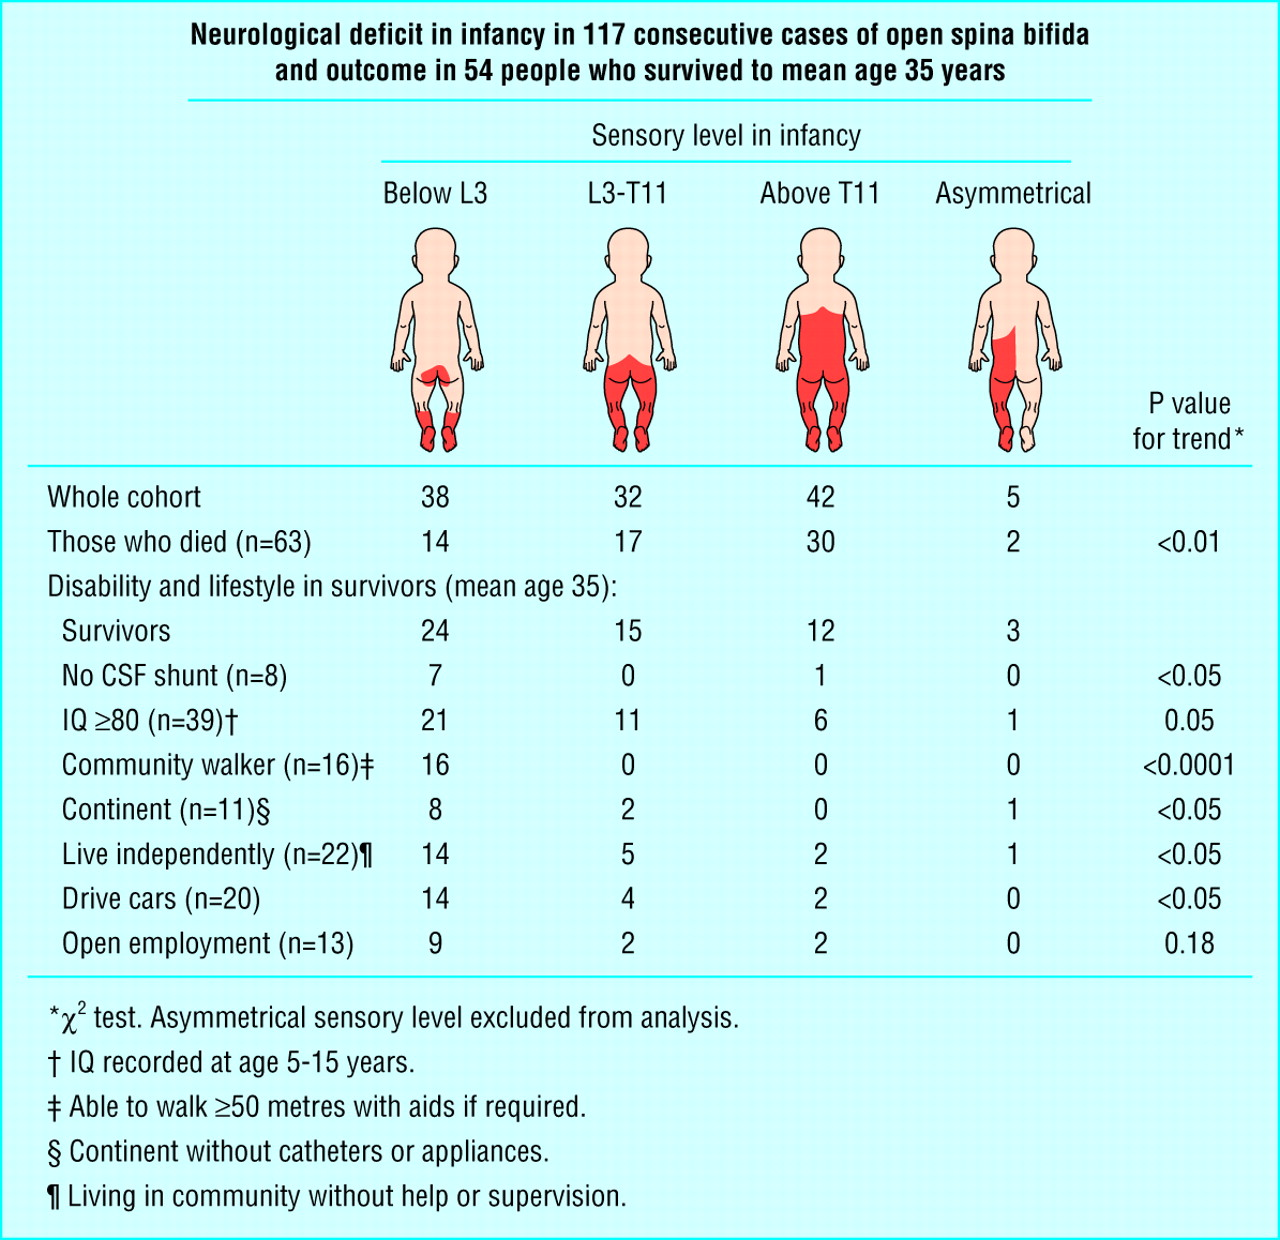 Outcome In People With Open Spina Bifida At Age 35